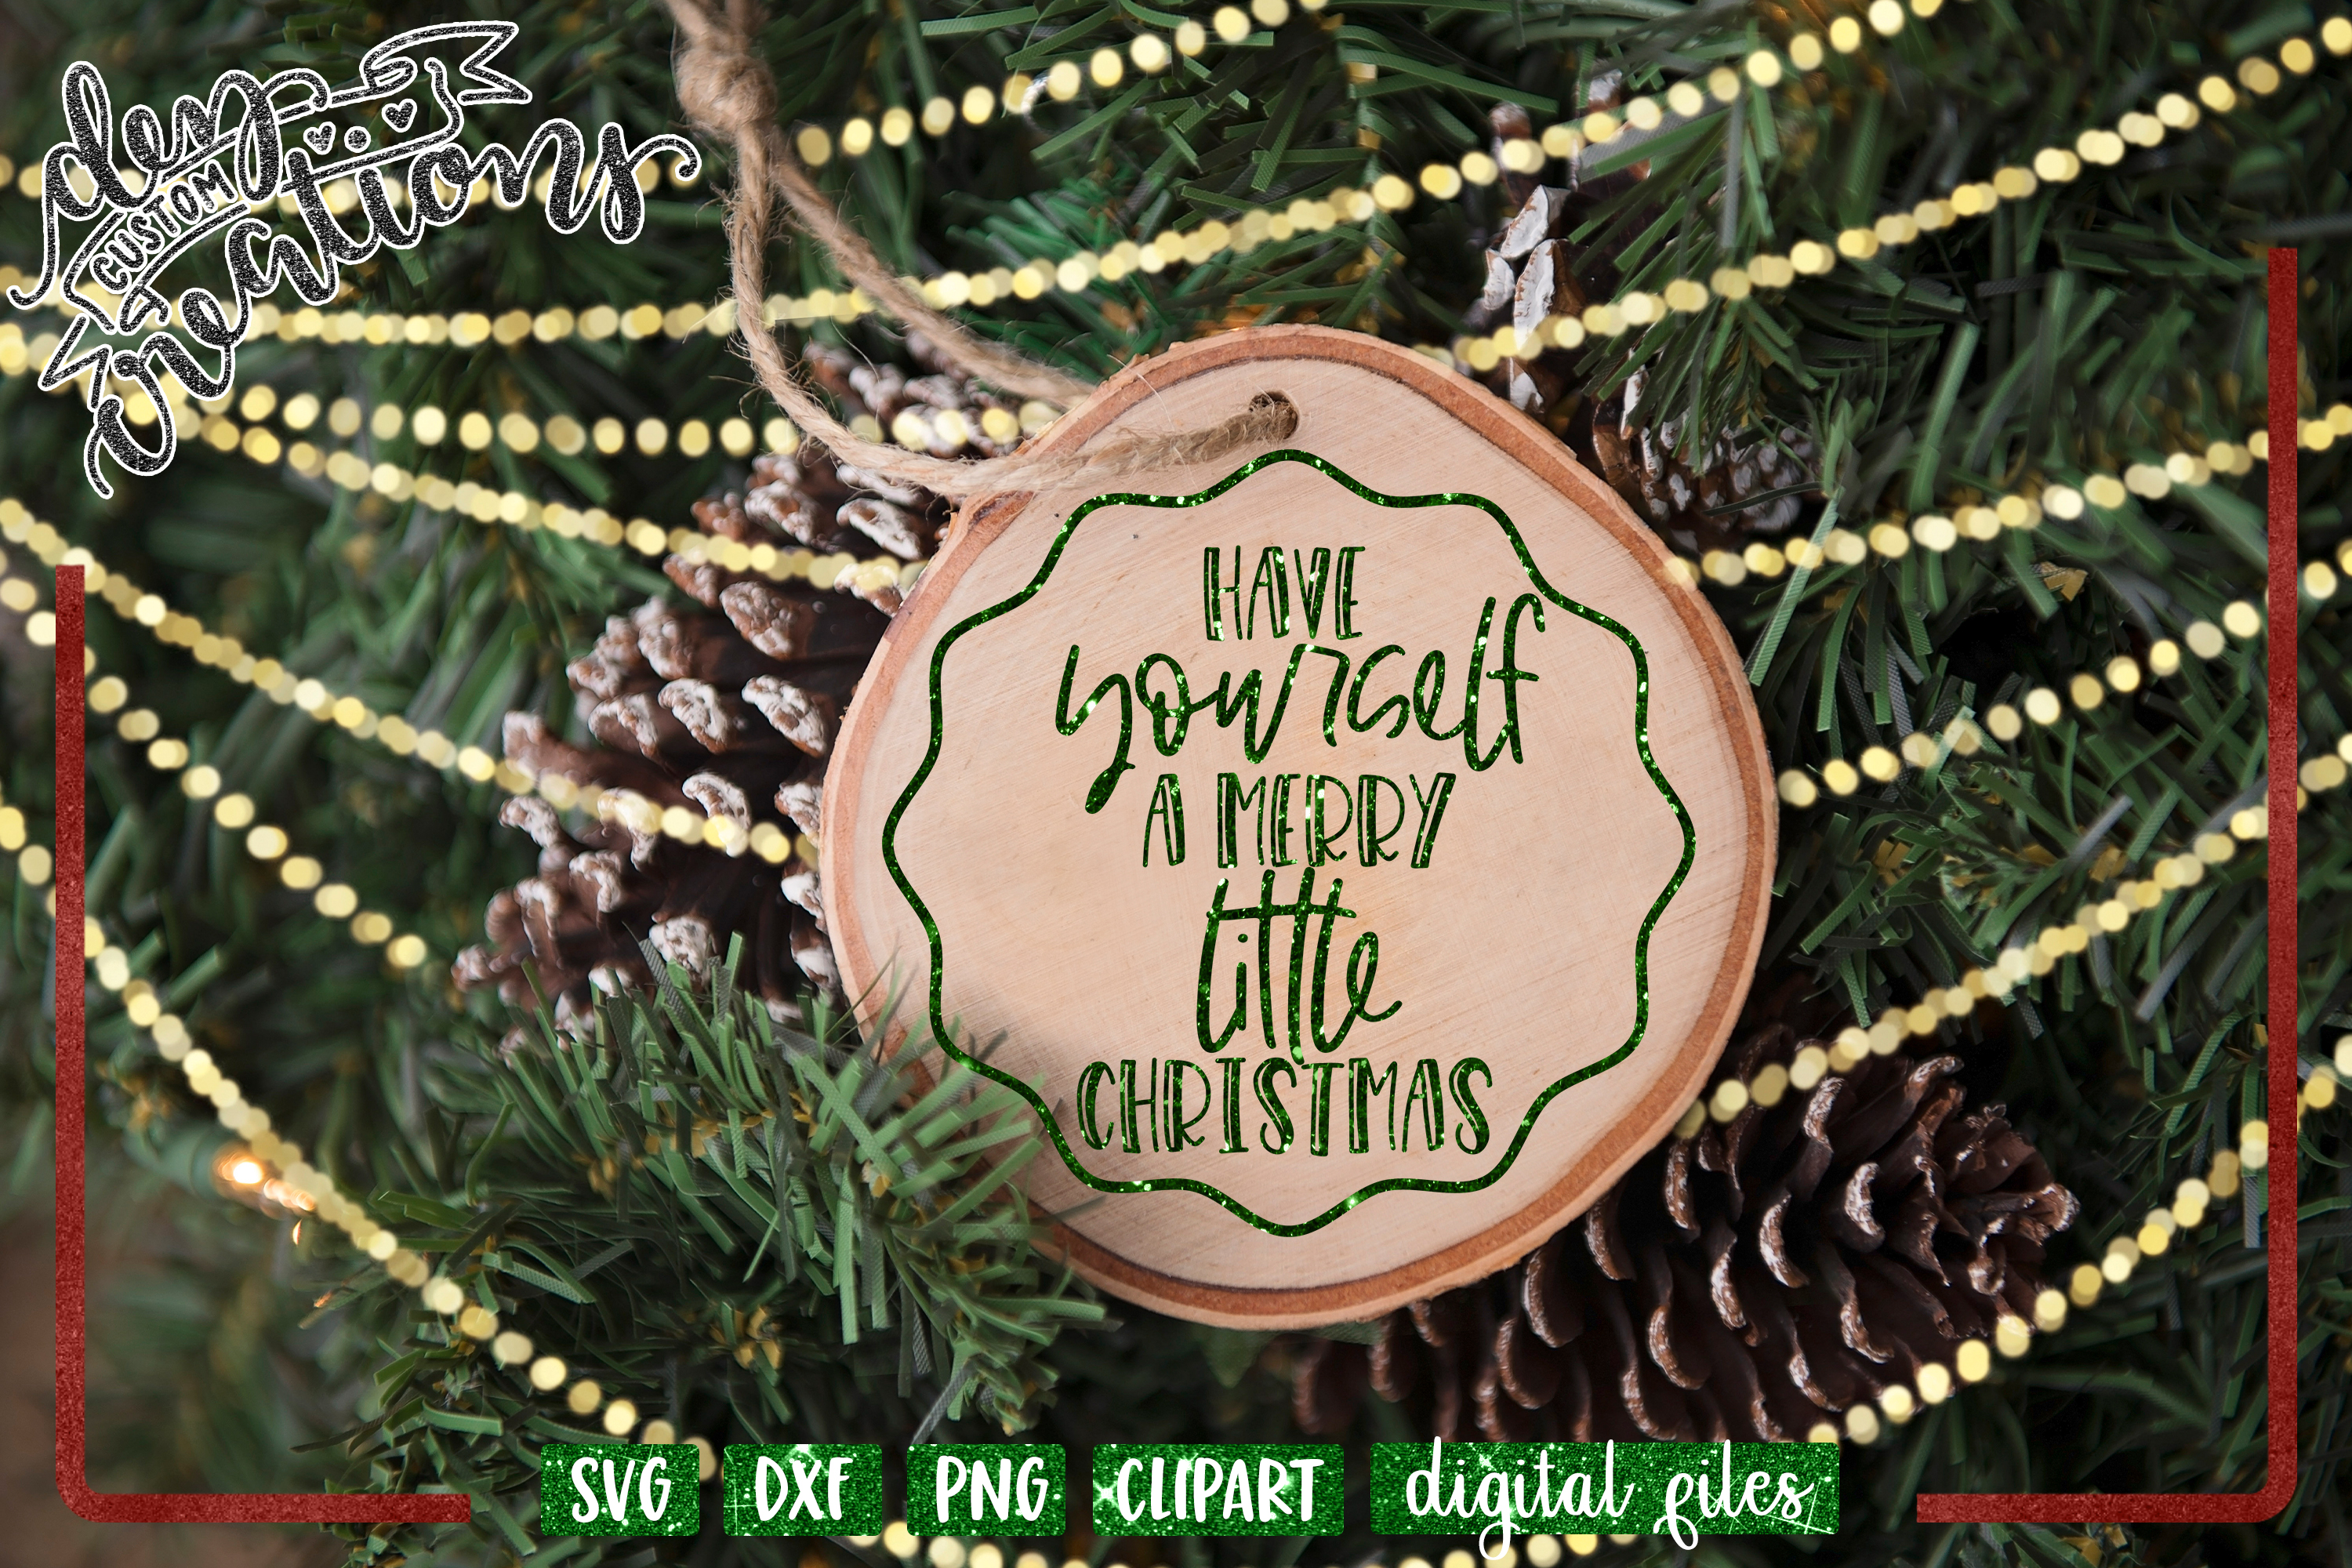 Have Yourself a Merry Little Christmas - SVG DXF PNG File example image 2